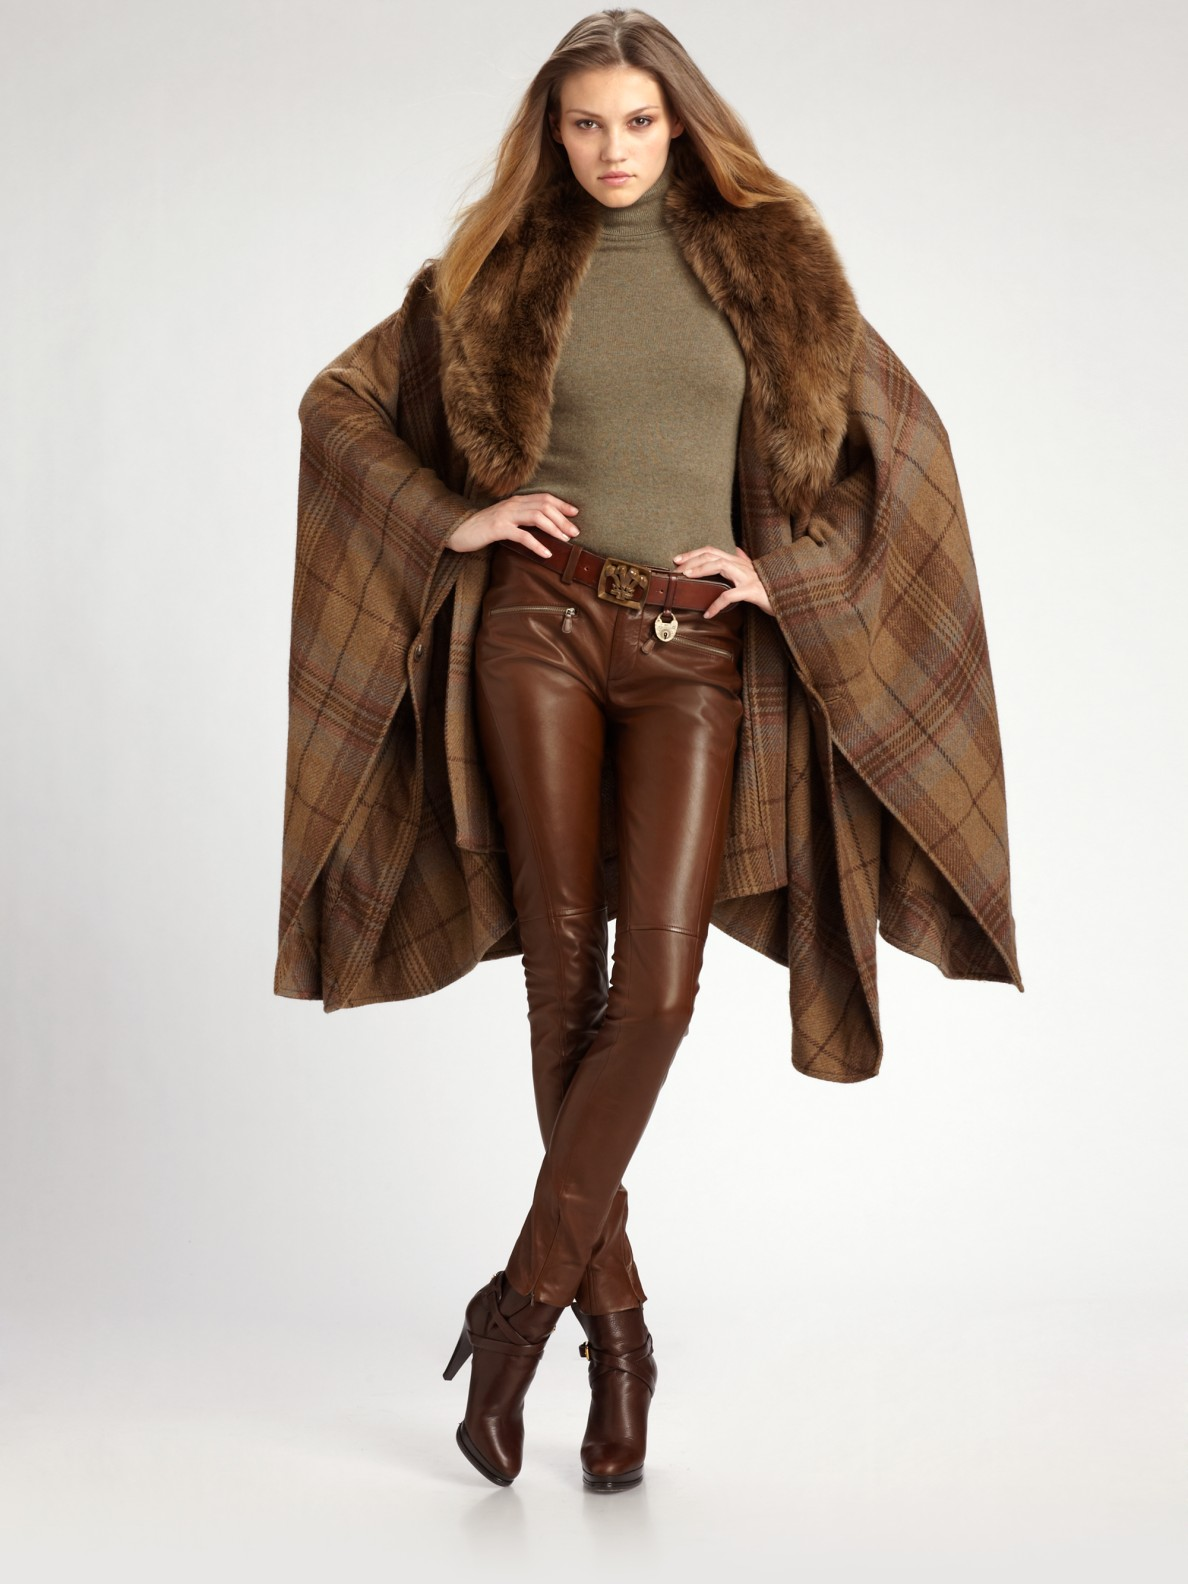 replicas attractivedesigns cheap for discount Ralph Lauren Blue Label Brown Leather Pants